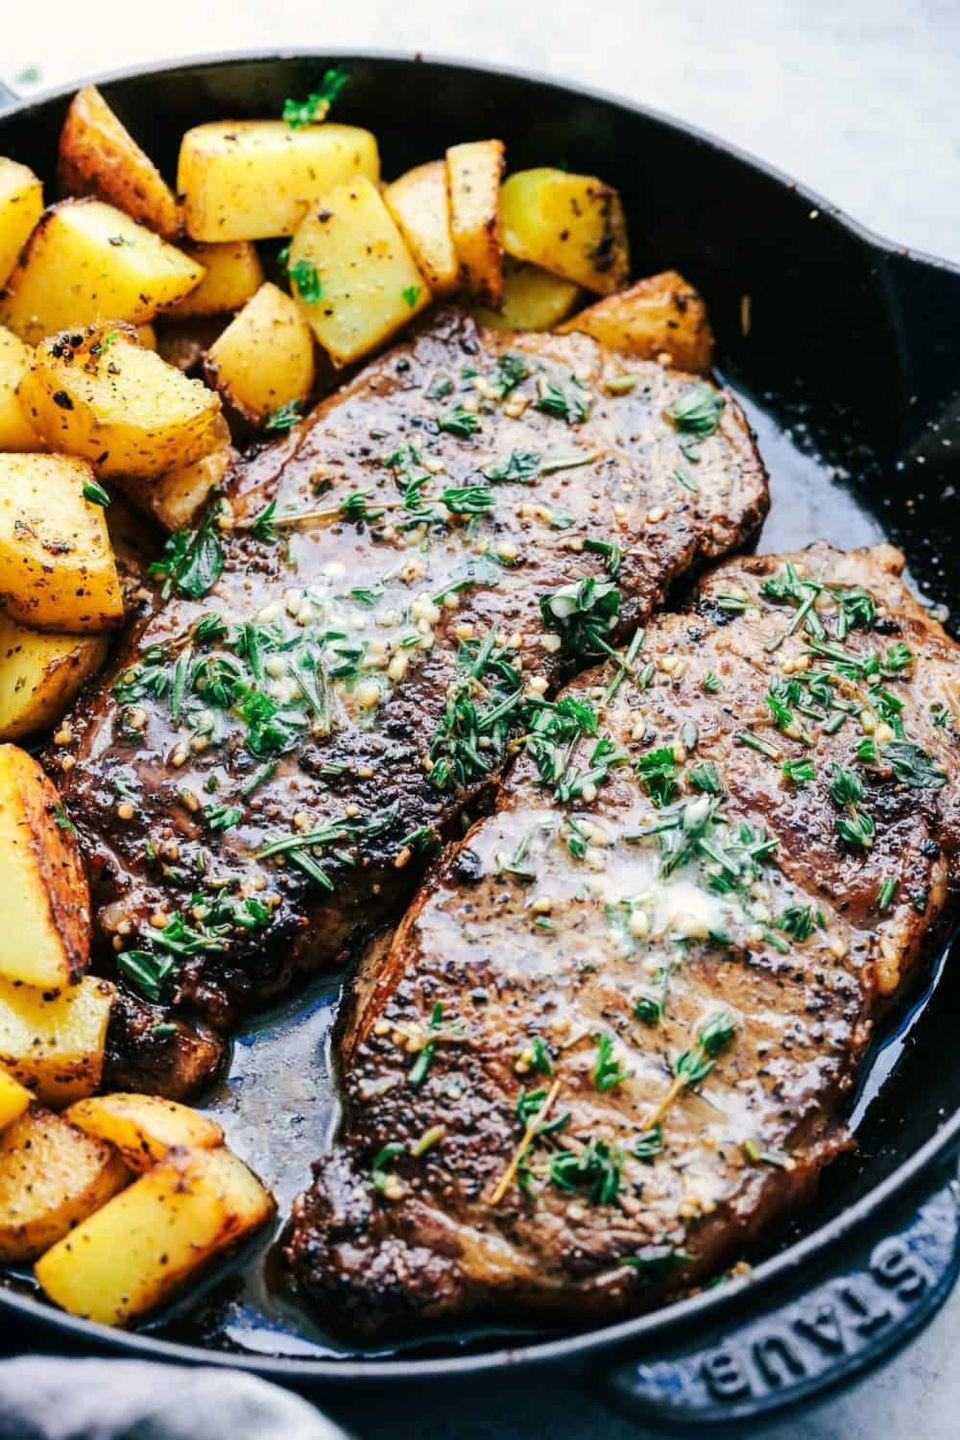 """<p>Pan-sear these garlicky cuts, then top them with a seriously delicious butter sauce. The blogger behind the recipes swears it's the best steak she's ever had.</p><p><strong>Get the recipe at <a href=""""https://therecipecritic.com/skillet-garlic-butter-herb-steak-and-potatoes/"""" rel=""""nofollow noopener"""" target=""""_blank"""" data-ylk=""""slk:The Recipe Critic"""" class=""""link rapid-noclick-resp"""">The Recipe Critic</a>.</strong></p><p><a class=""""link rapid-noclick-resp"""" href=""""https://go.redirectingat.com?id=74968X1596630&url=https%3A%2F%2Fwww.walmart.com%2Fbrowse%2Fhome%2Ffood-storage-containers%2Fthe-pioneer-woman%2F4044_623679_1032619_5842891%2FYnJhbmQ6VGhlIFBpb25lZXIgV29tYW4ie&sref=https%3A%2F%2Fwww.thepioneerwoman.com%2Ffood-cooking%2Fmeals-menus%2Fg35191871%2Fsteak-dinner-recipes%2F"""" rel=""""nofollow noopener"""" target=""""_blank"""" data-ylk=""""slk:SHOP FOOD STORAGE"""">SHOP FOOD STORAGE</a></p>"""